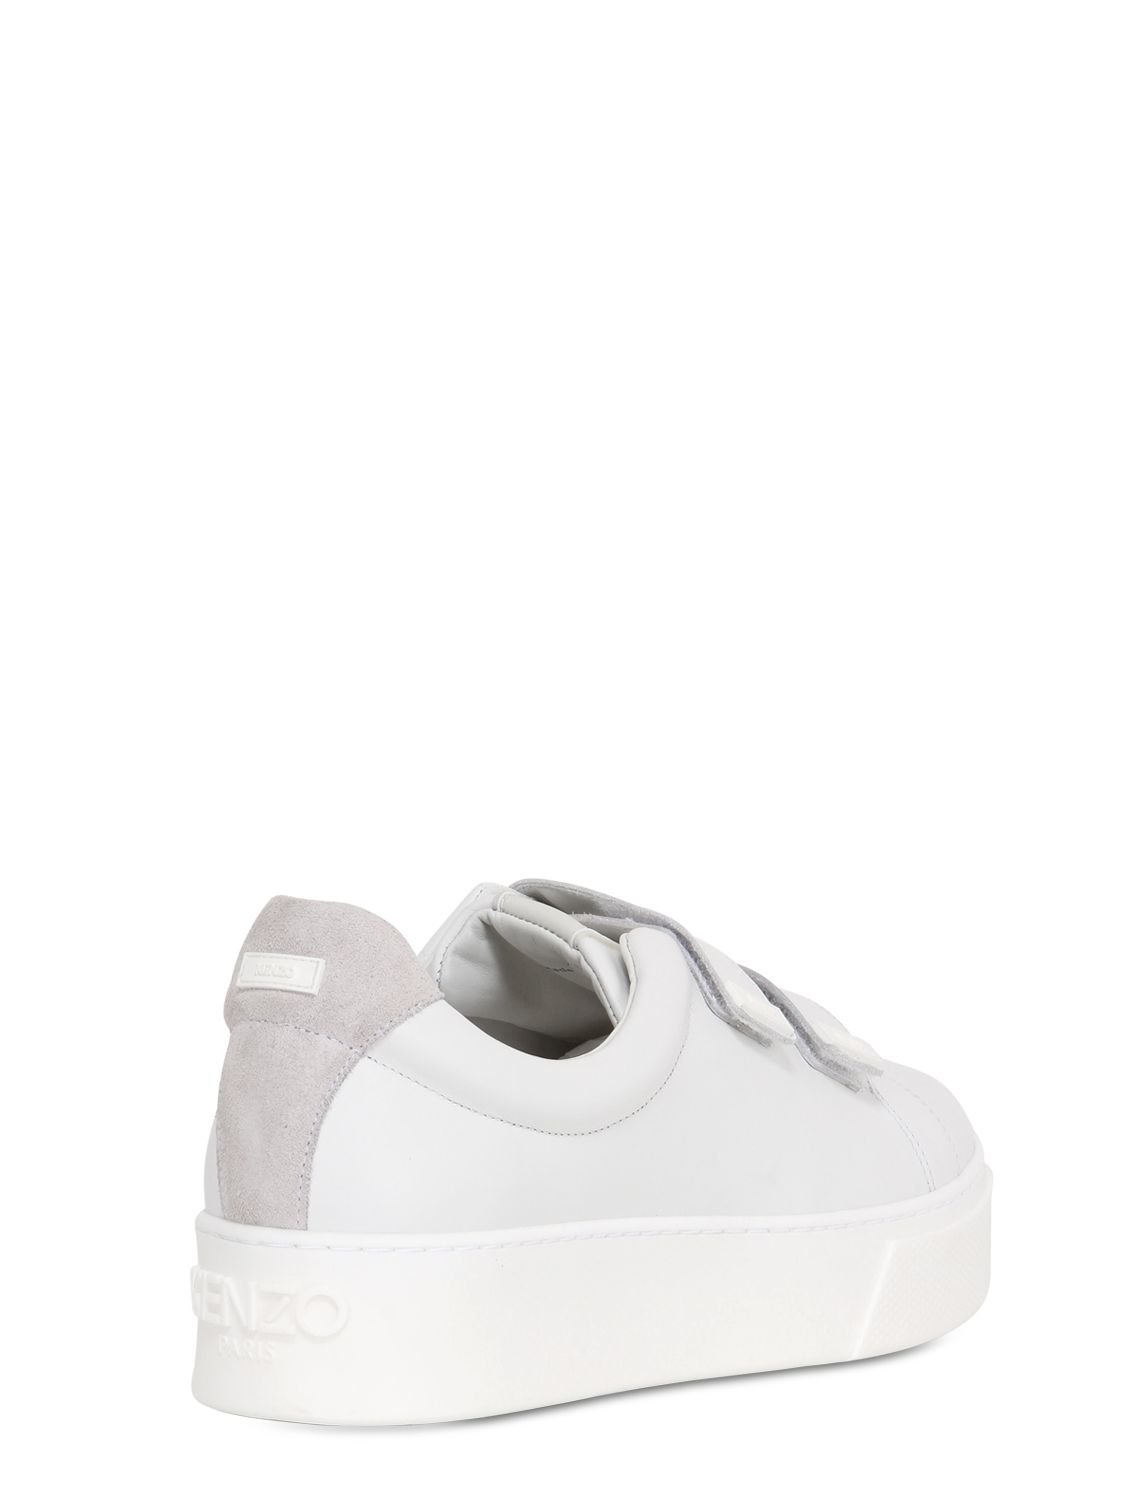 6eff730ab1e5 Lyst - KENZO 50mm Chunky Leather Sneakers in White